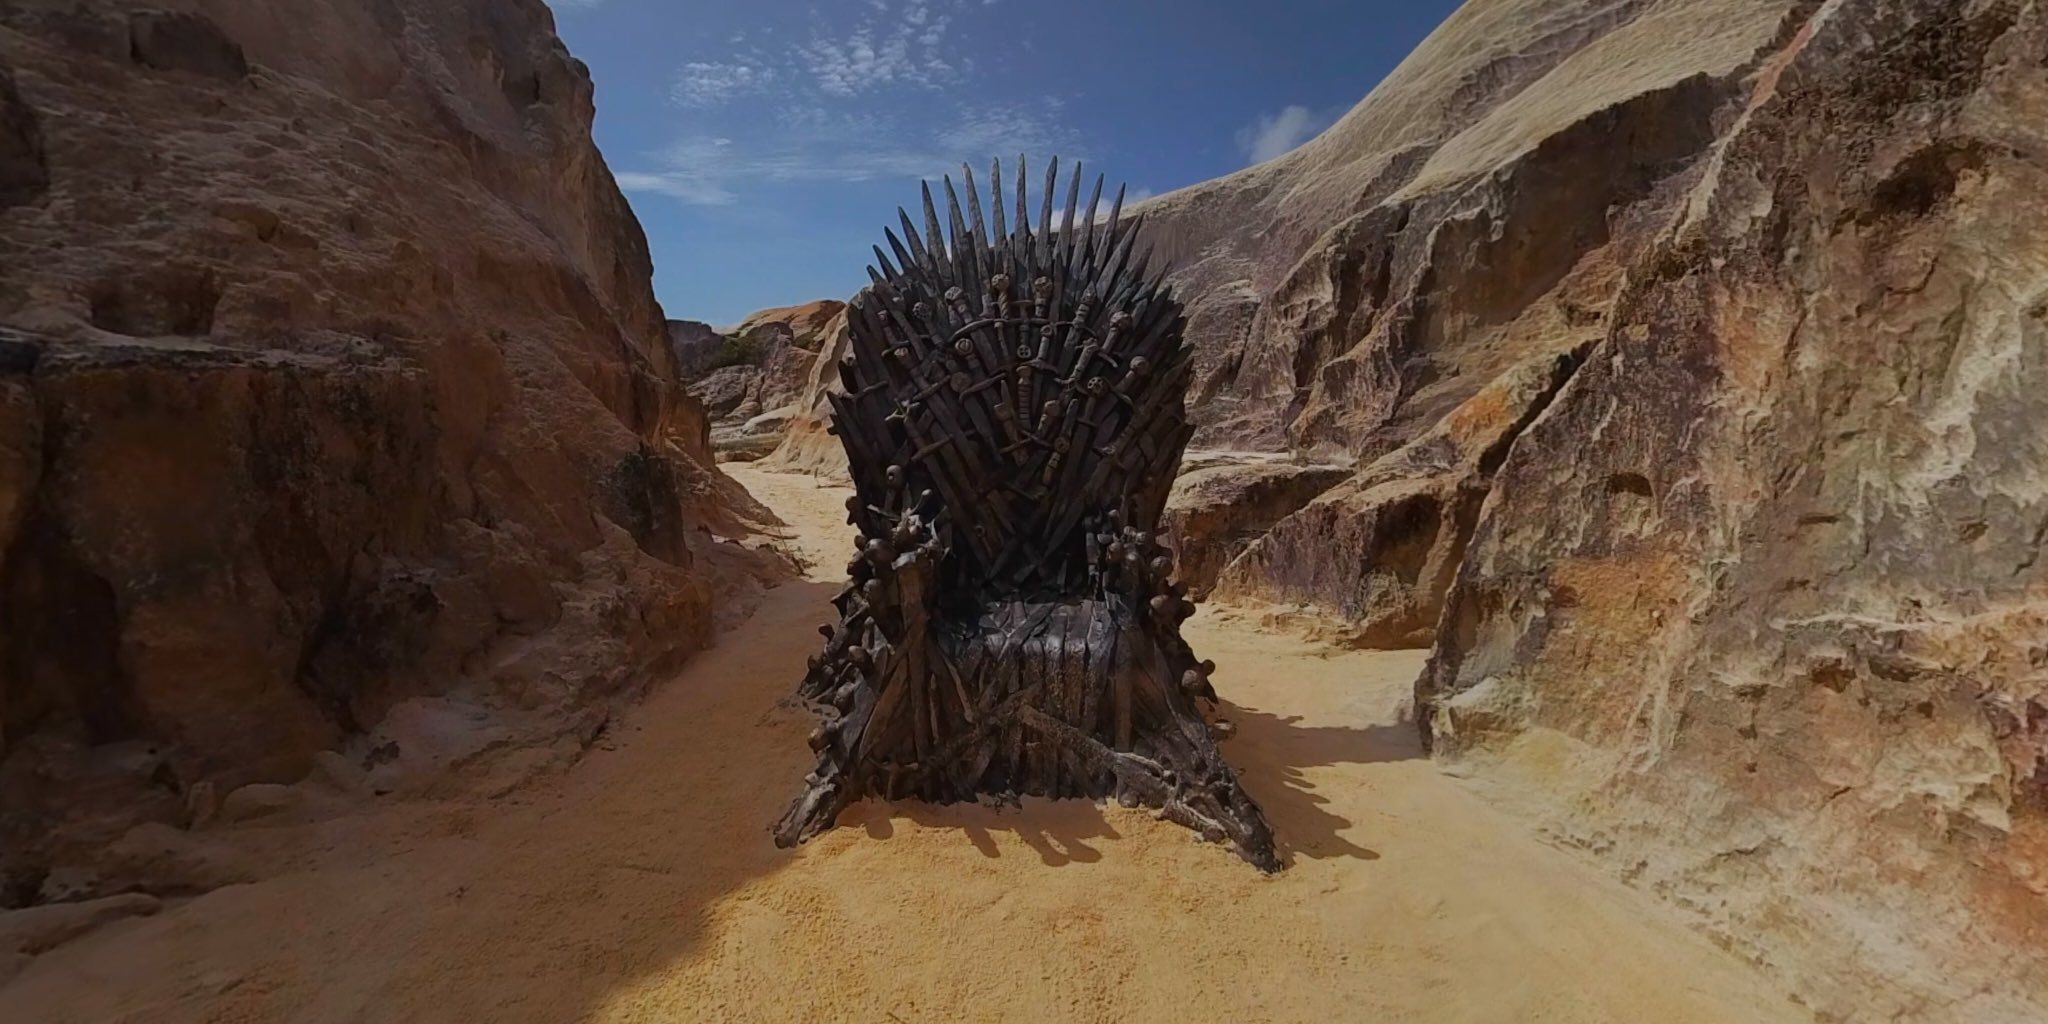 'Game of Thrones': Trono de Ferro é encontrado em praia do